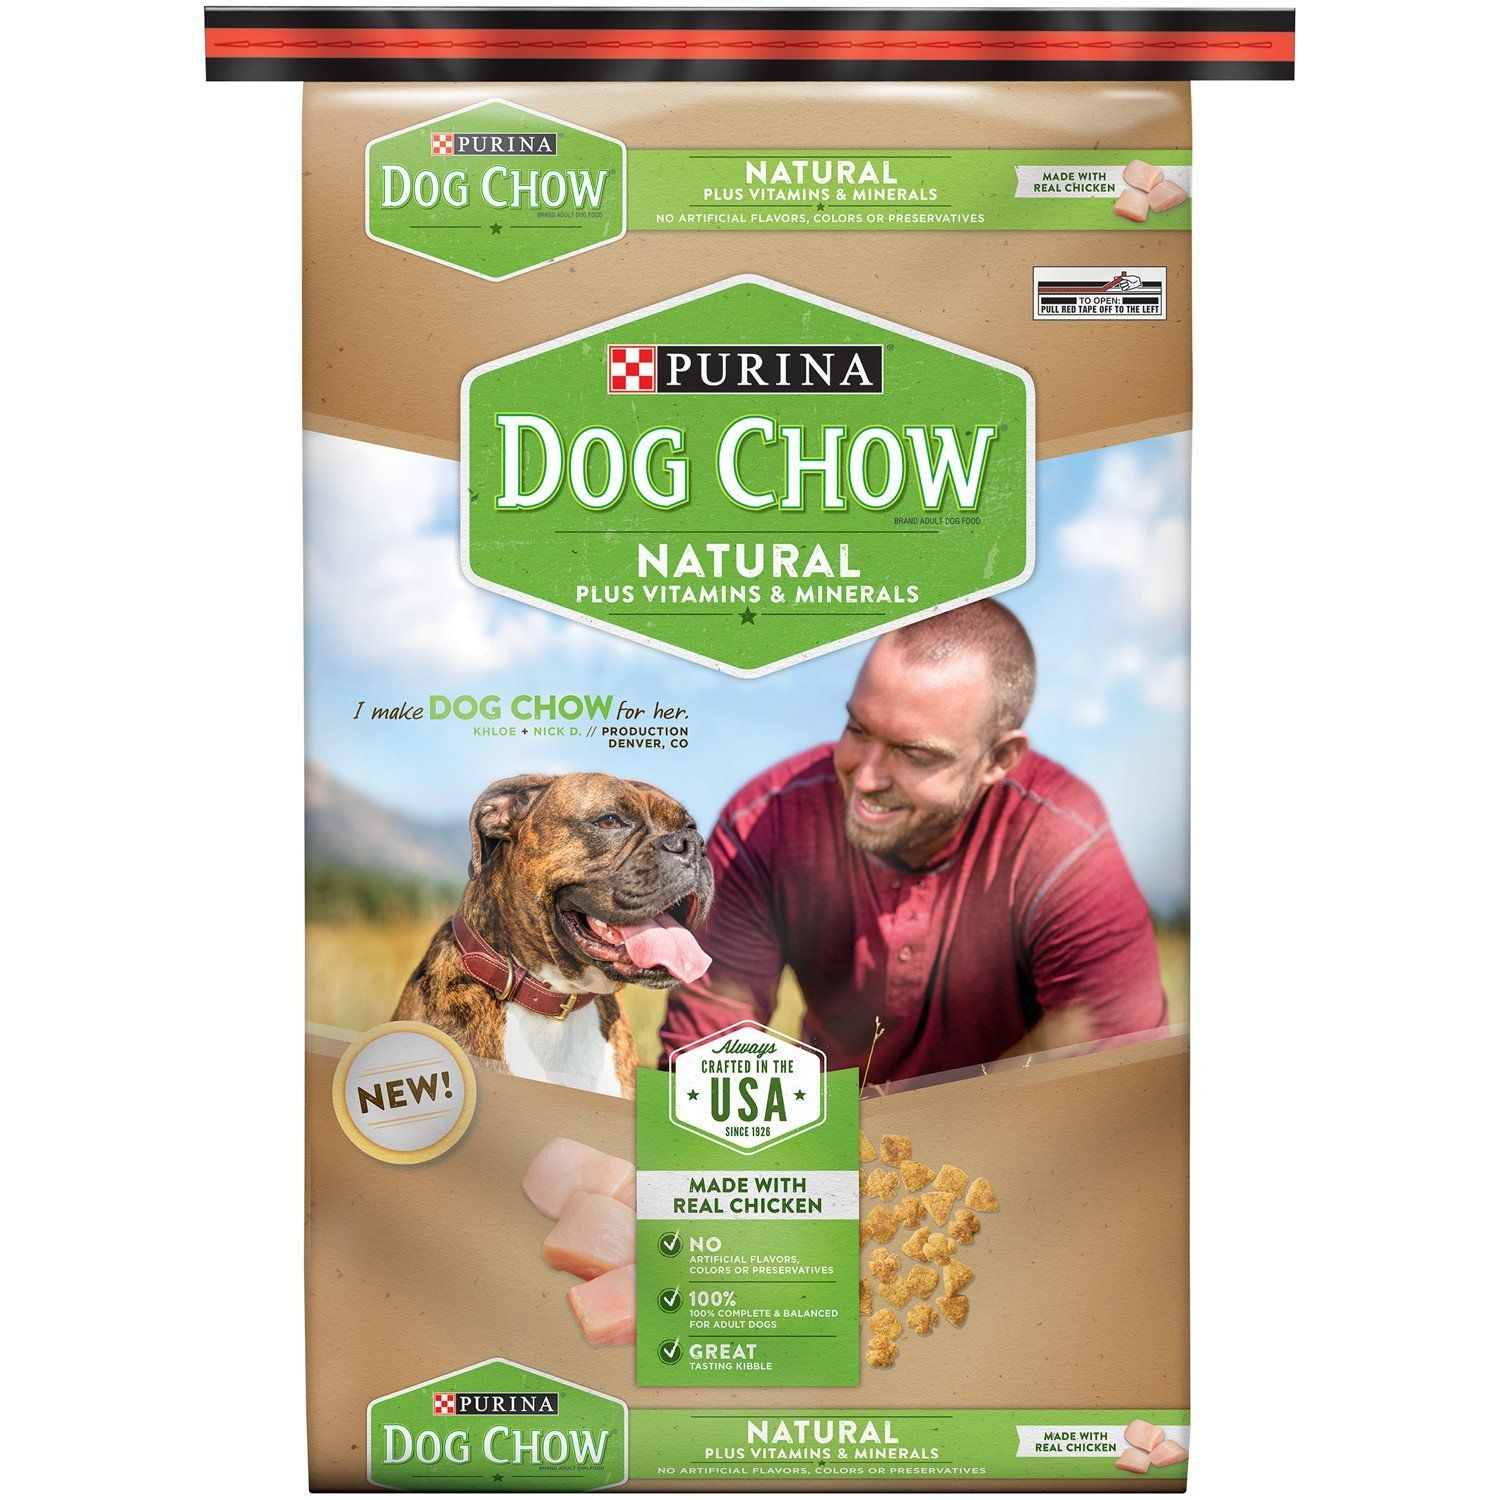 Purina Dog Chow Natural Dry Dog Food Trust Me This Is Great